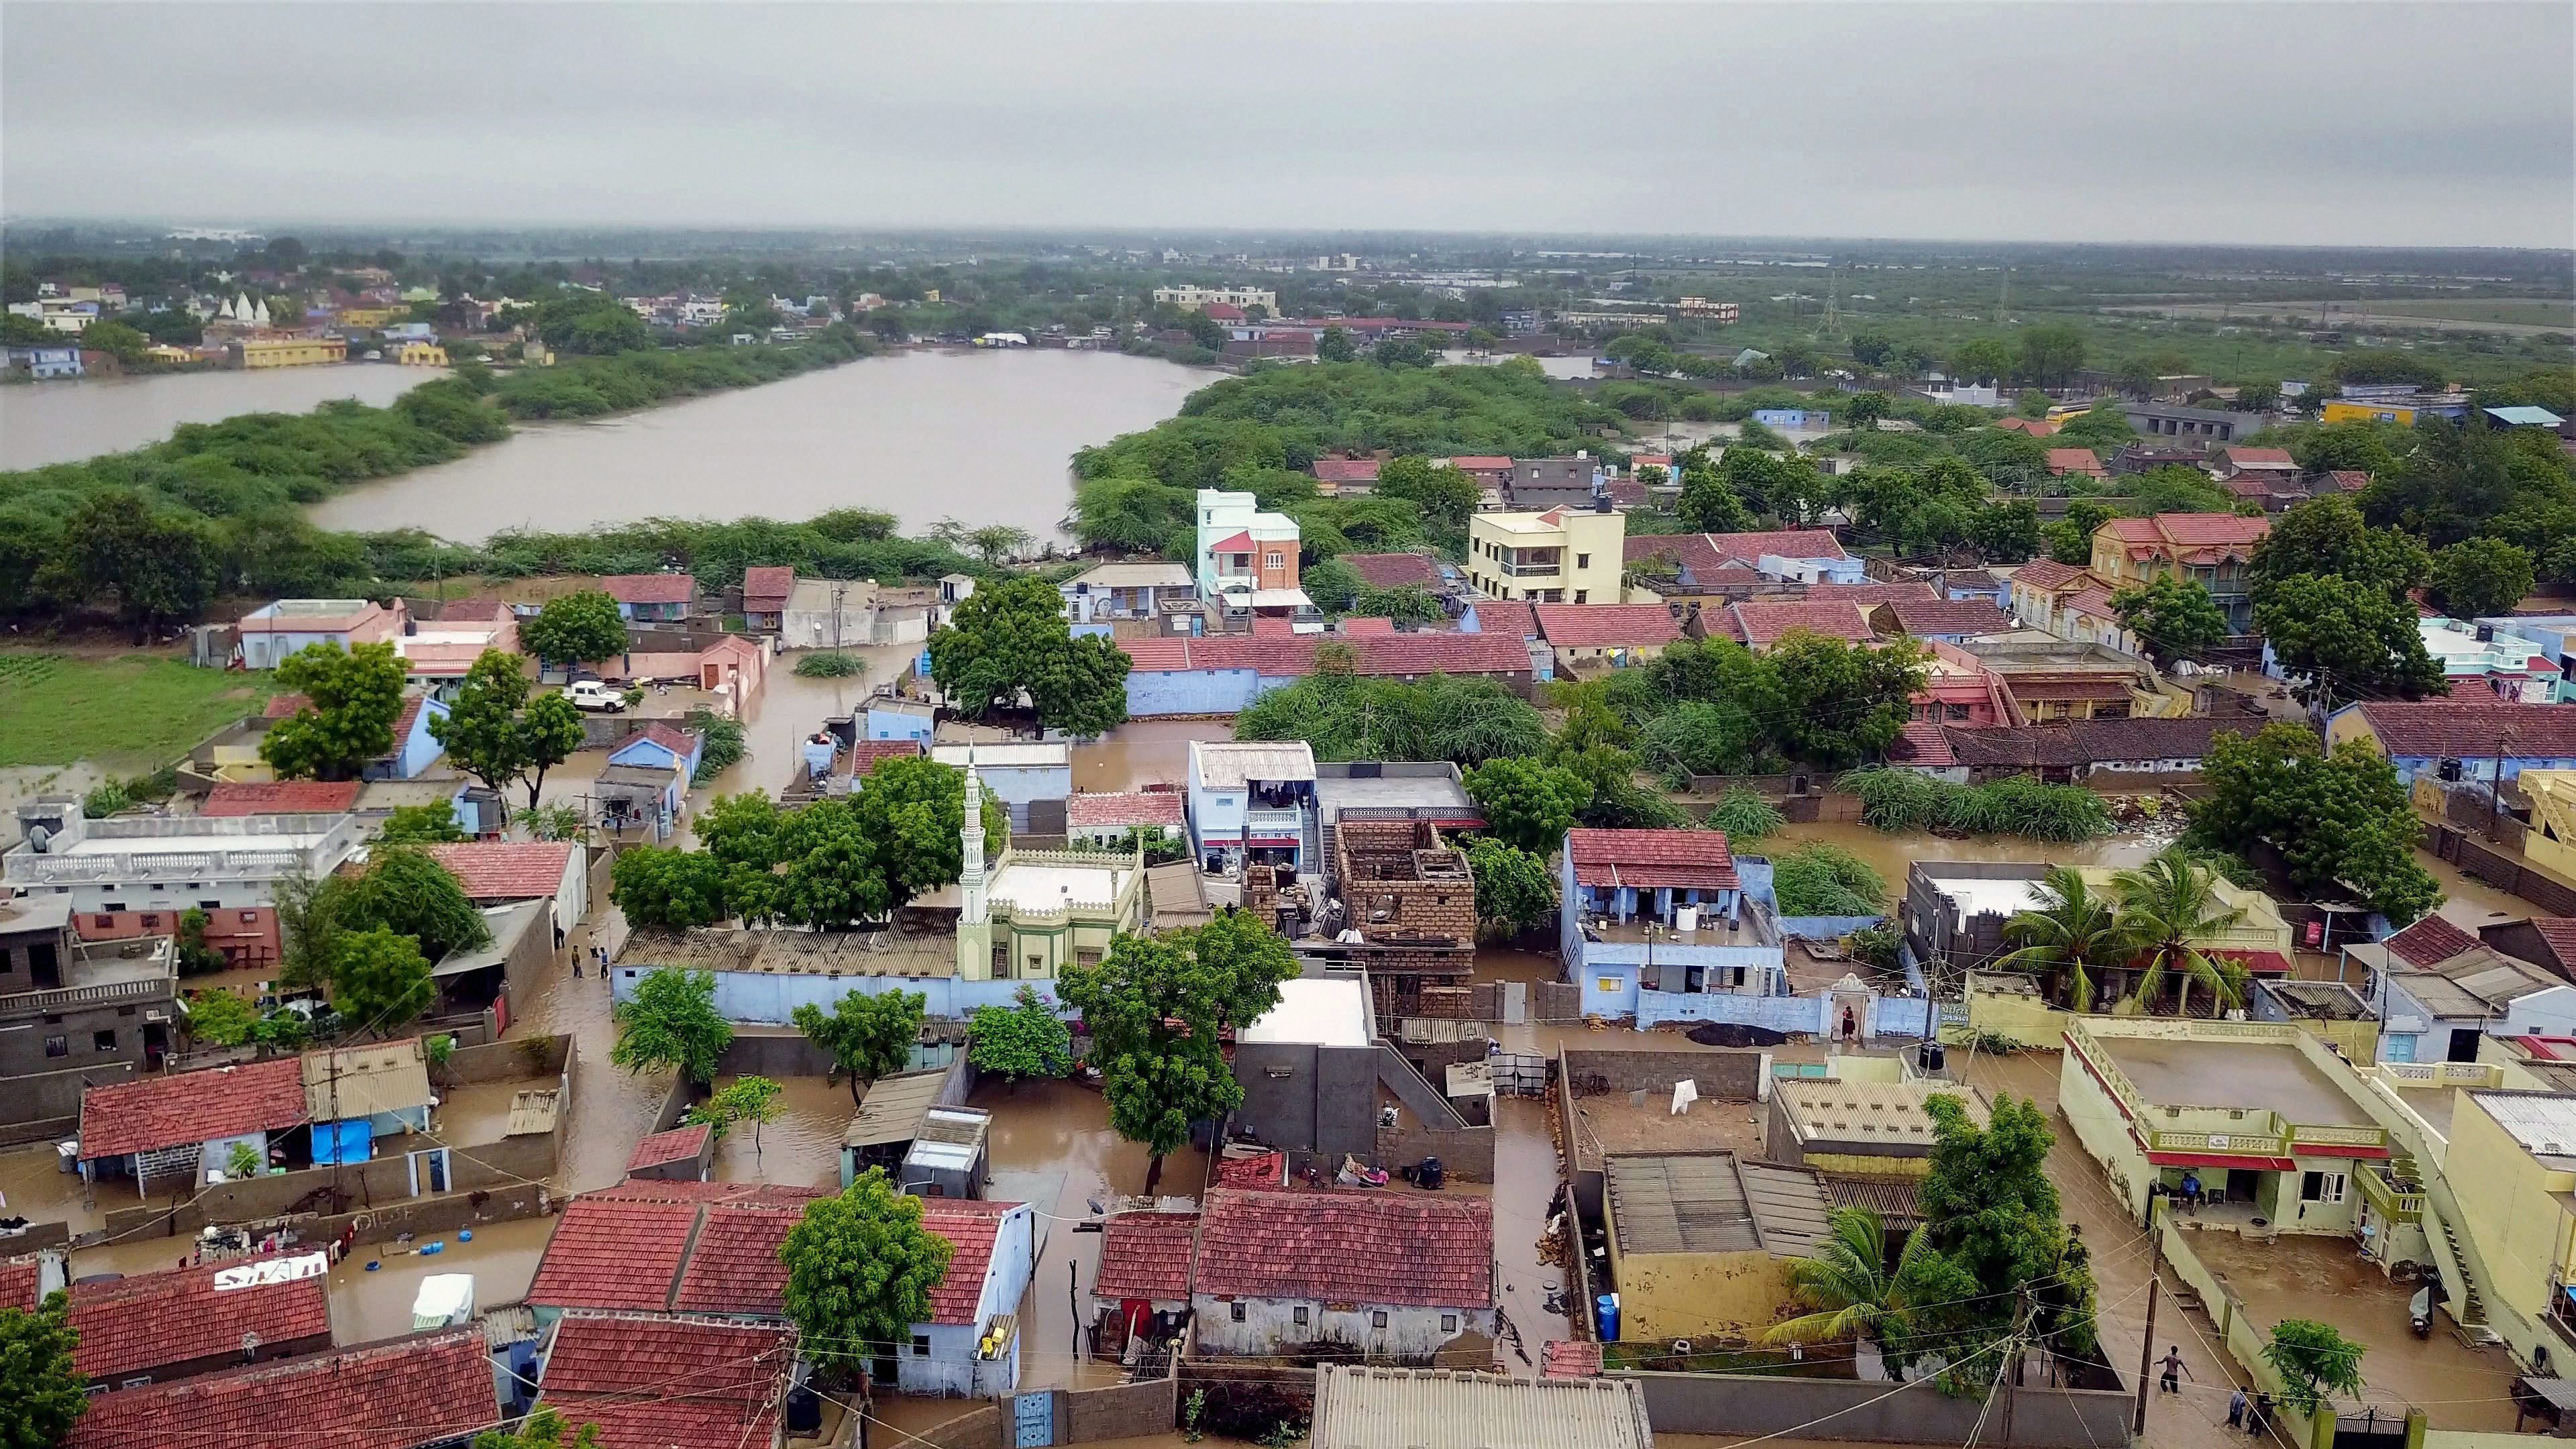 The Abadasa taluk in Gujarat's Kutch district is flooded after heavy rain. (Credit: PTI)